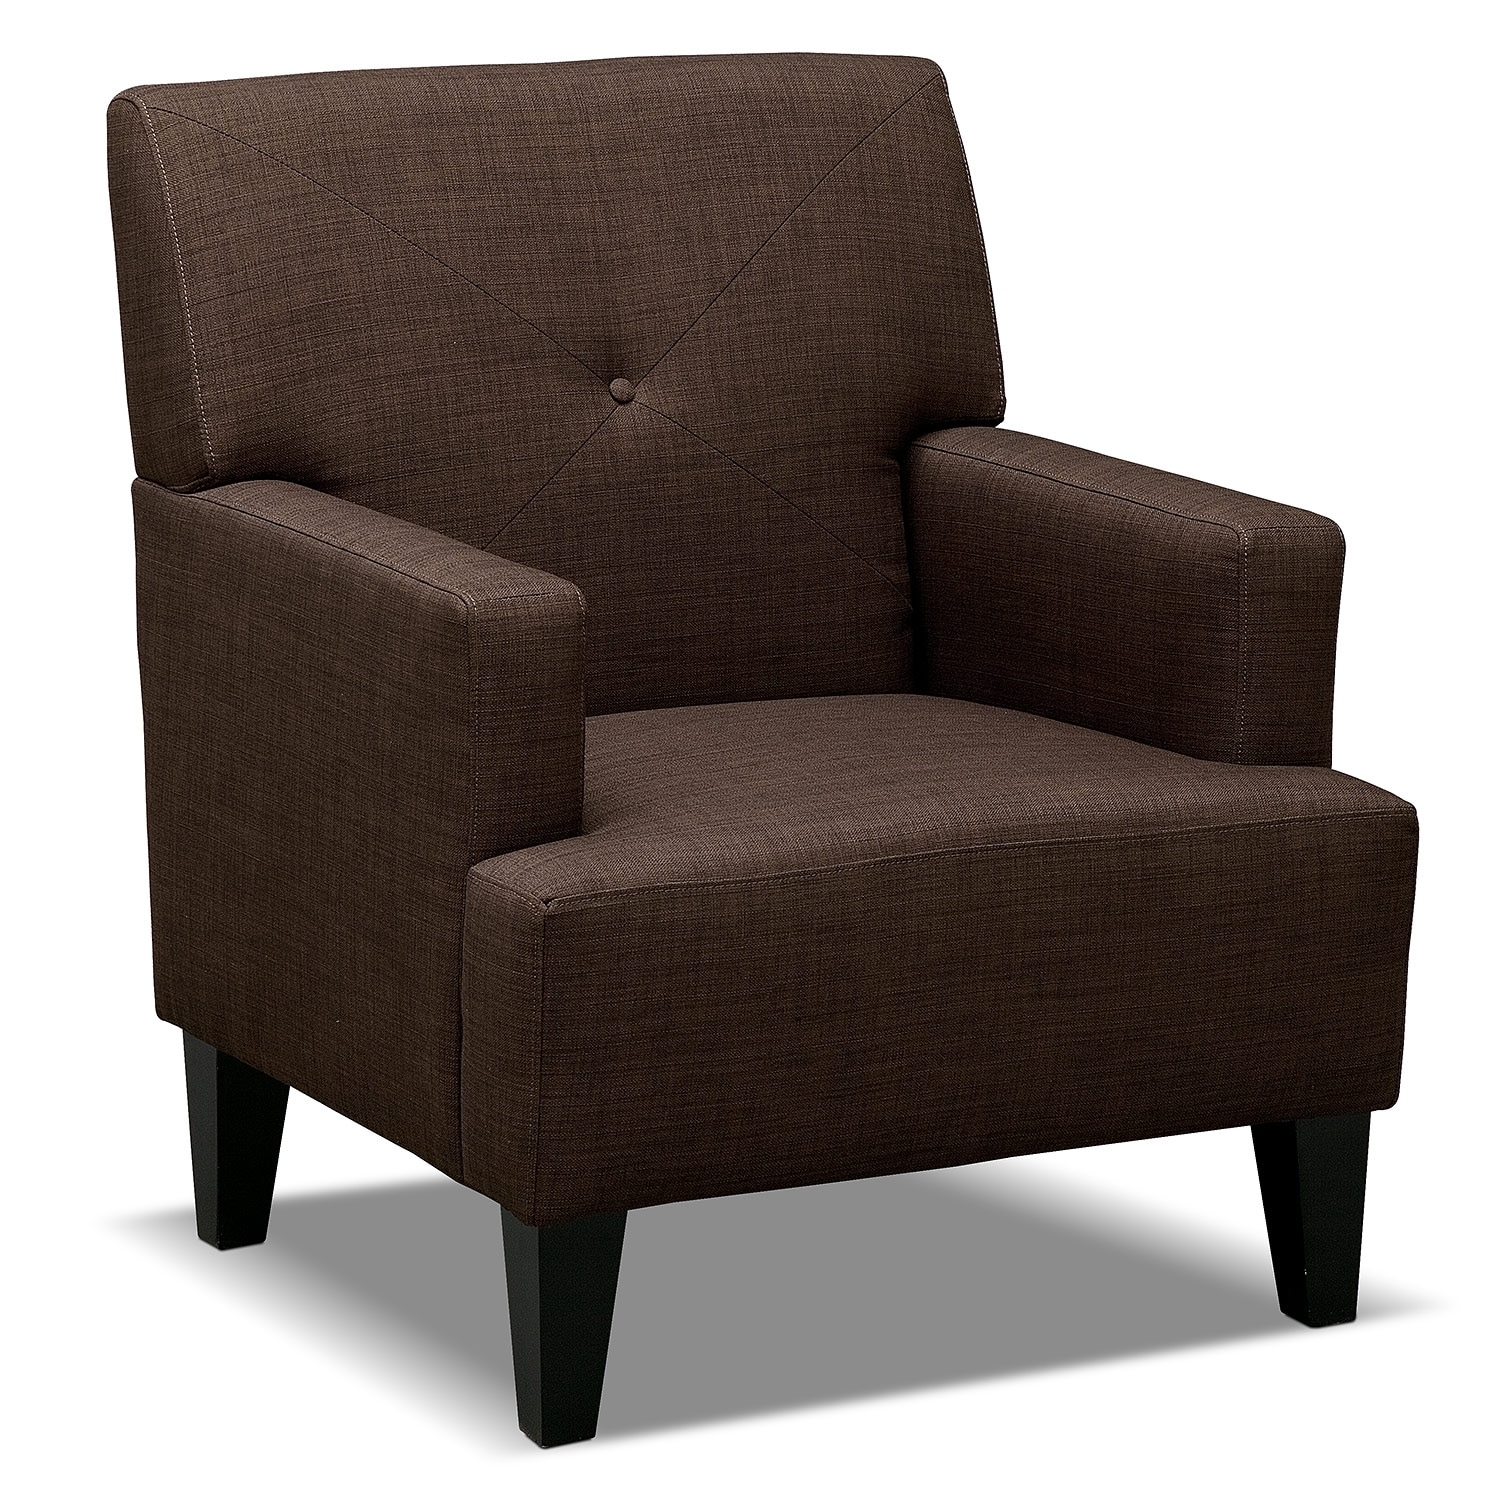 Living Room Furniture - Avalon Accent Chair - Espresso